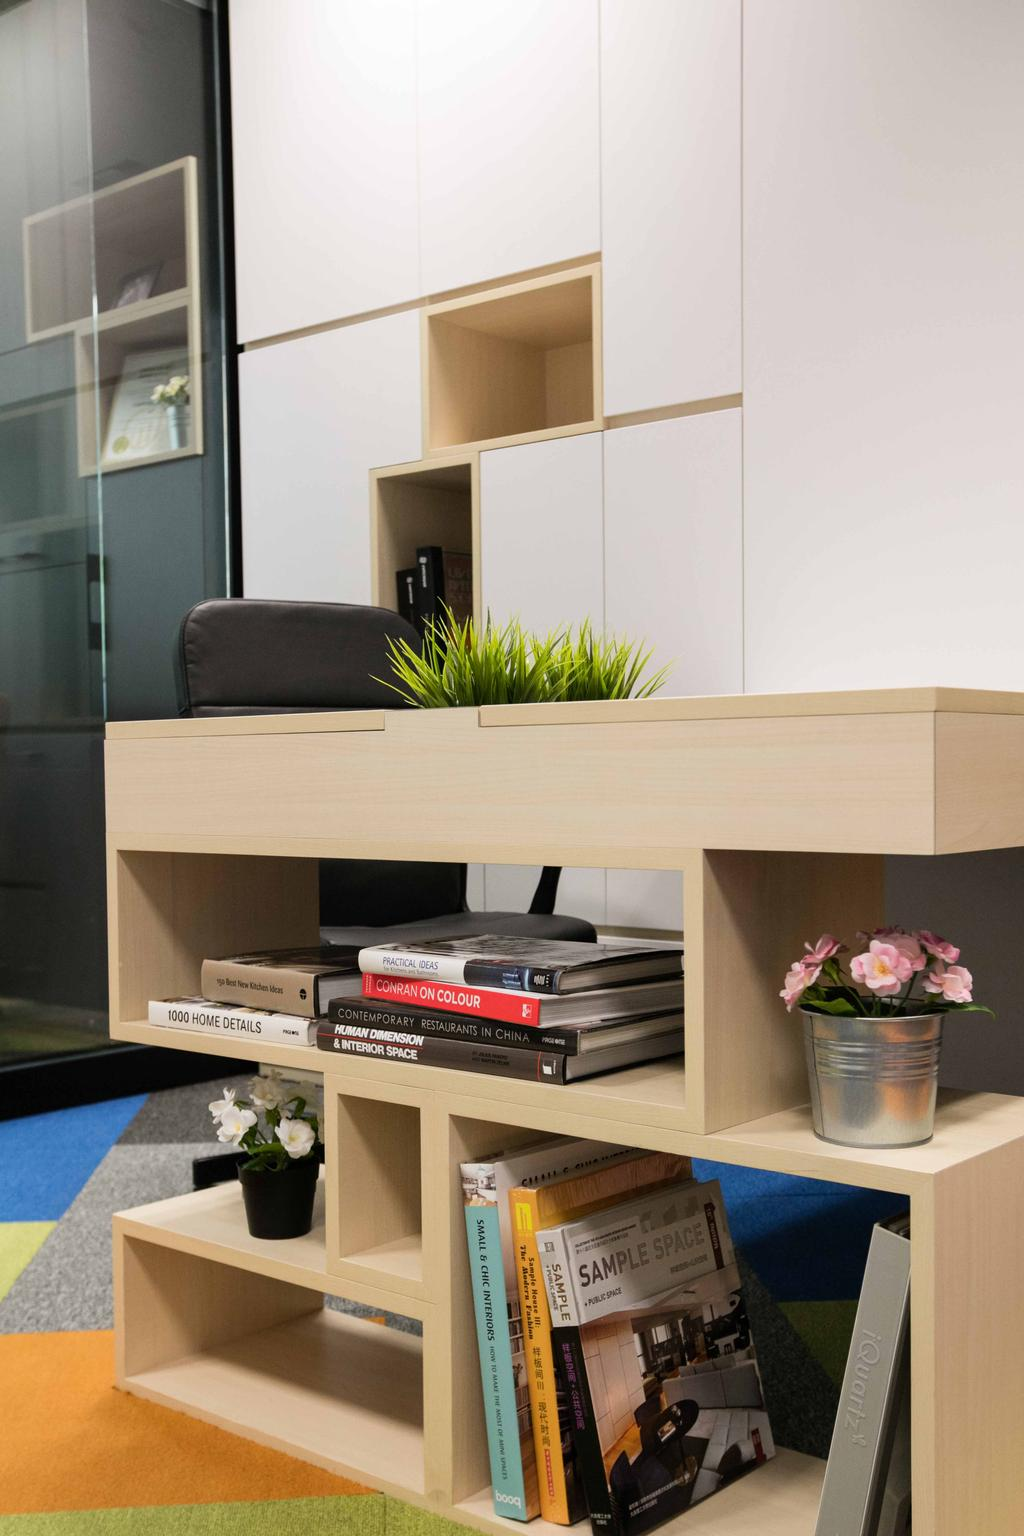 Schema Craft Interior Design Office, Commercial, Interior Designer, Schemacraft, Contemporary, Shleving, Table, Carpet, Flora, Jar, Plant, Potted Plant, Pottery, Vase, Coffee Table, Furniture, Couch